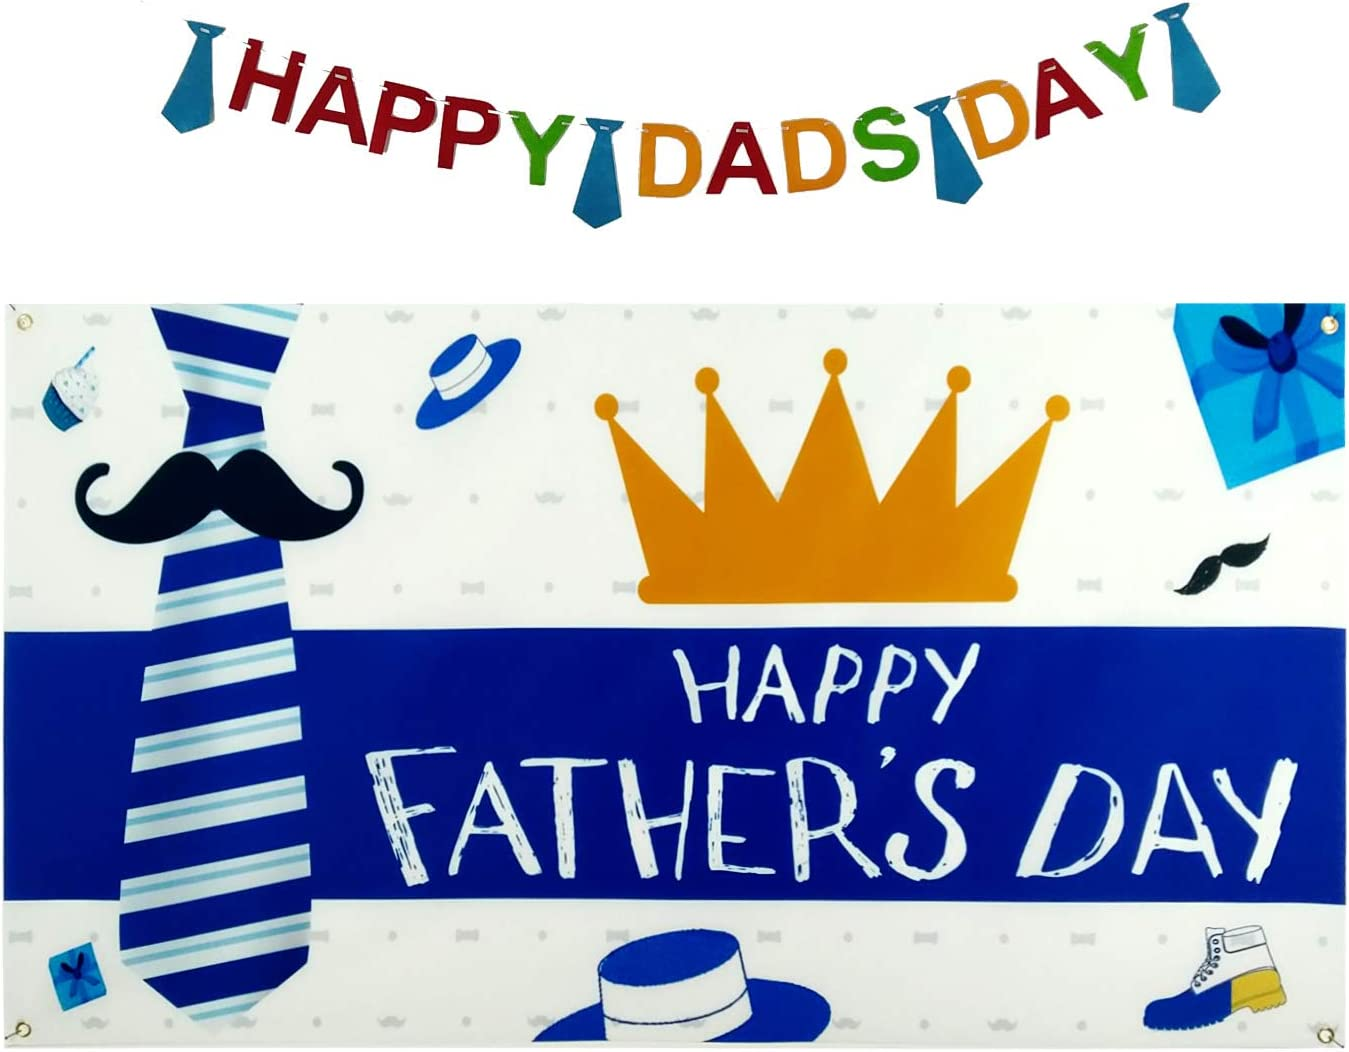 Happy Fathers Day Decorations Gifts - Fathers Day Decor Backdrop Banner Supplies for Daddy's Day Family Photo Booth (Blue)